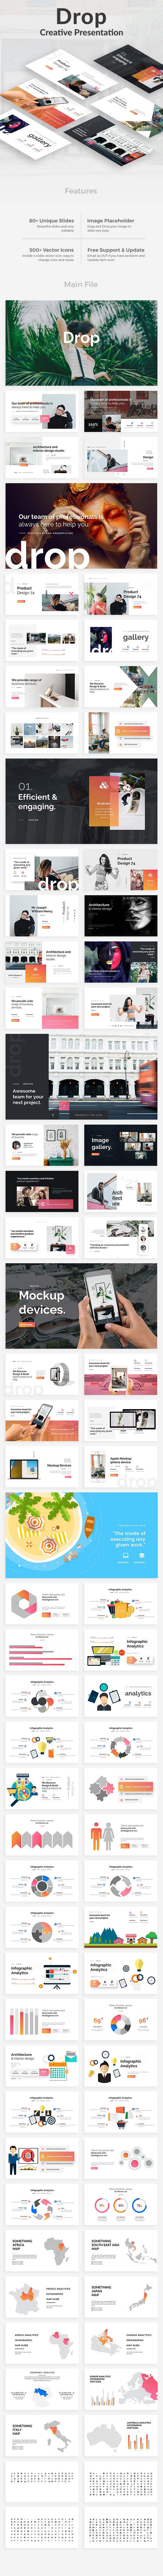 Drop Creative Keynote Template - Creative Keynote Templates